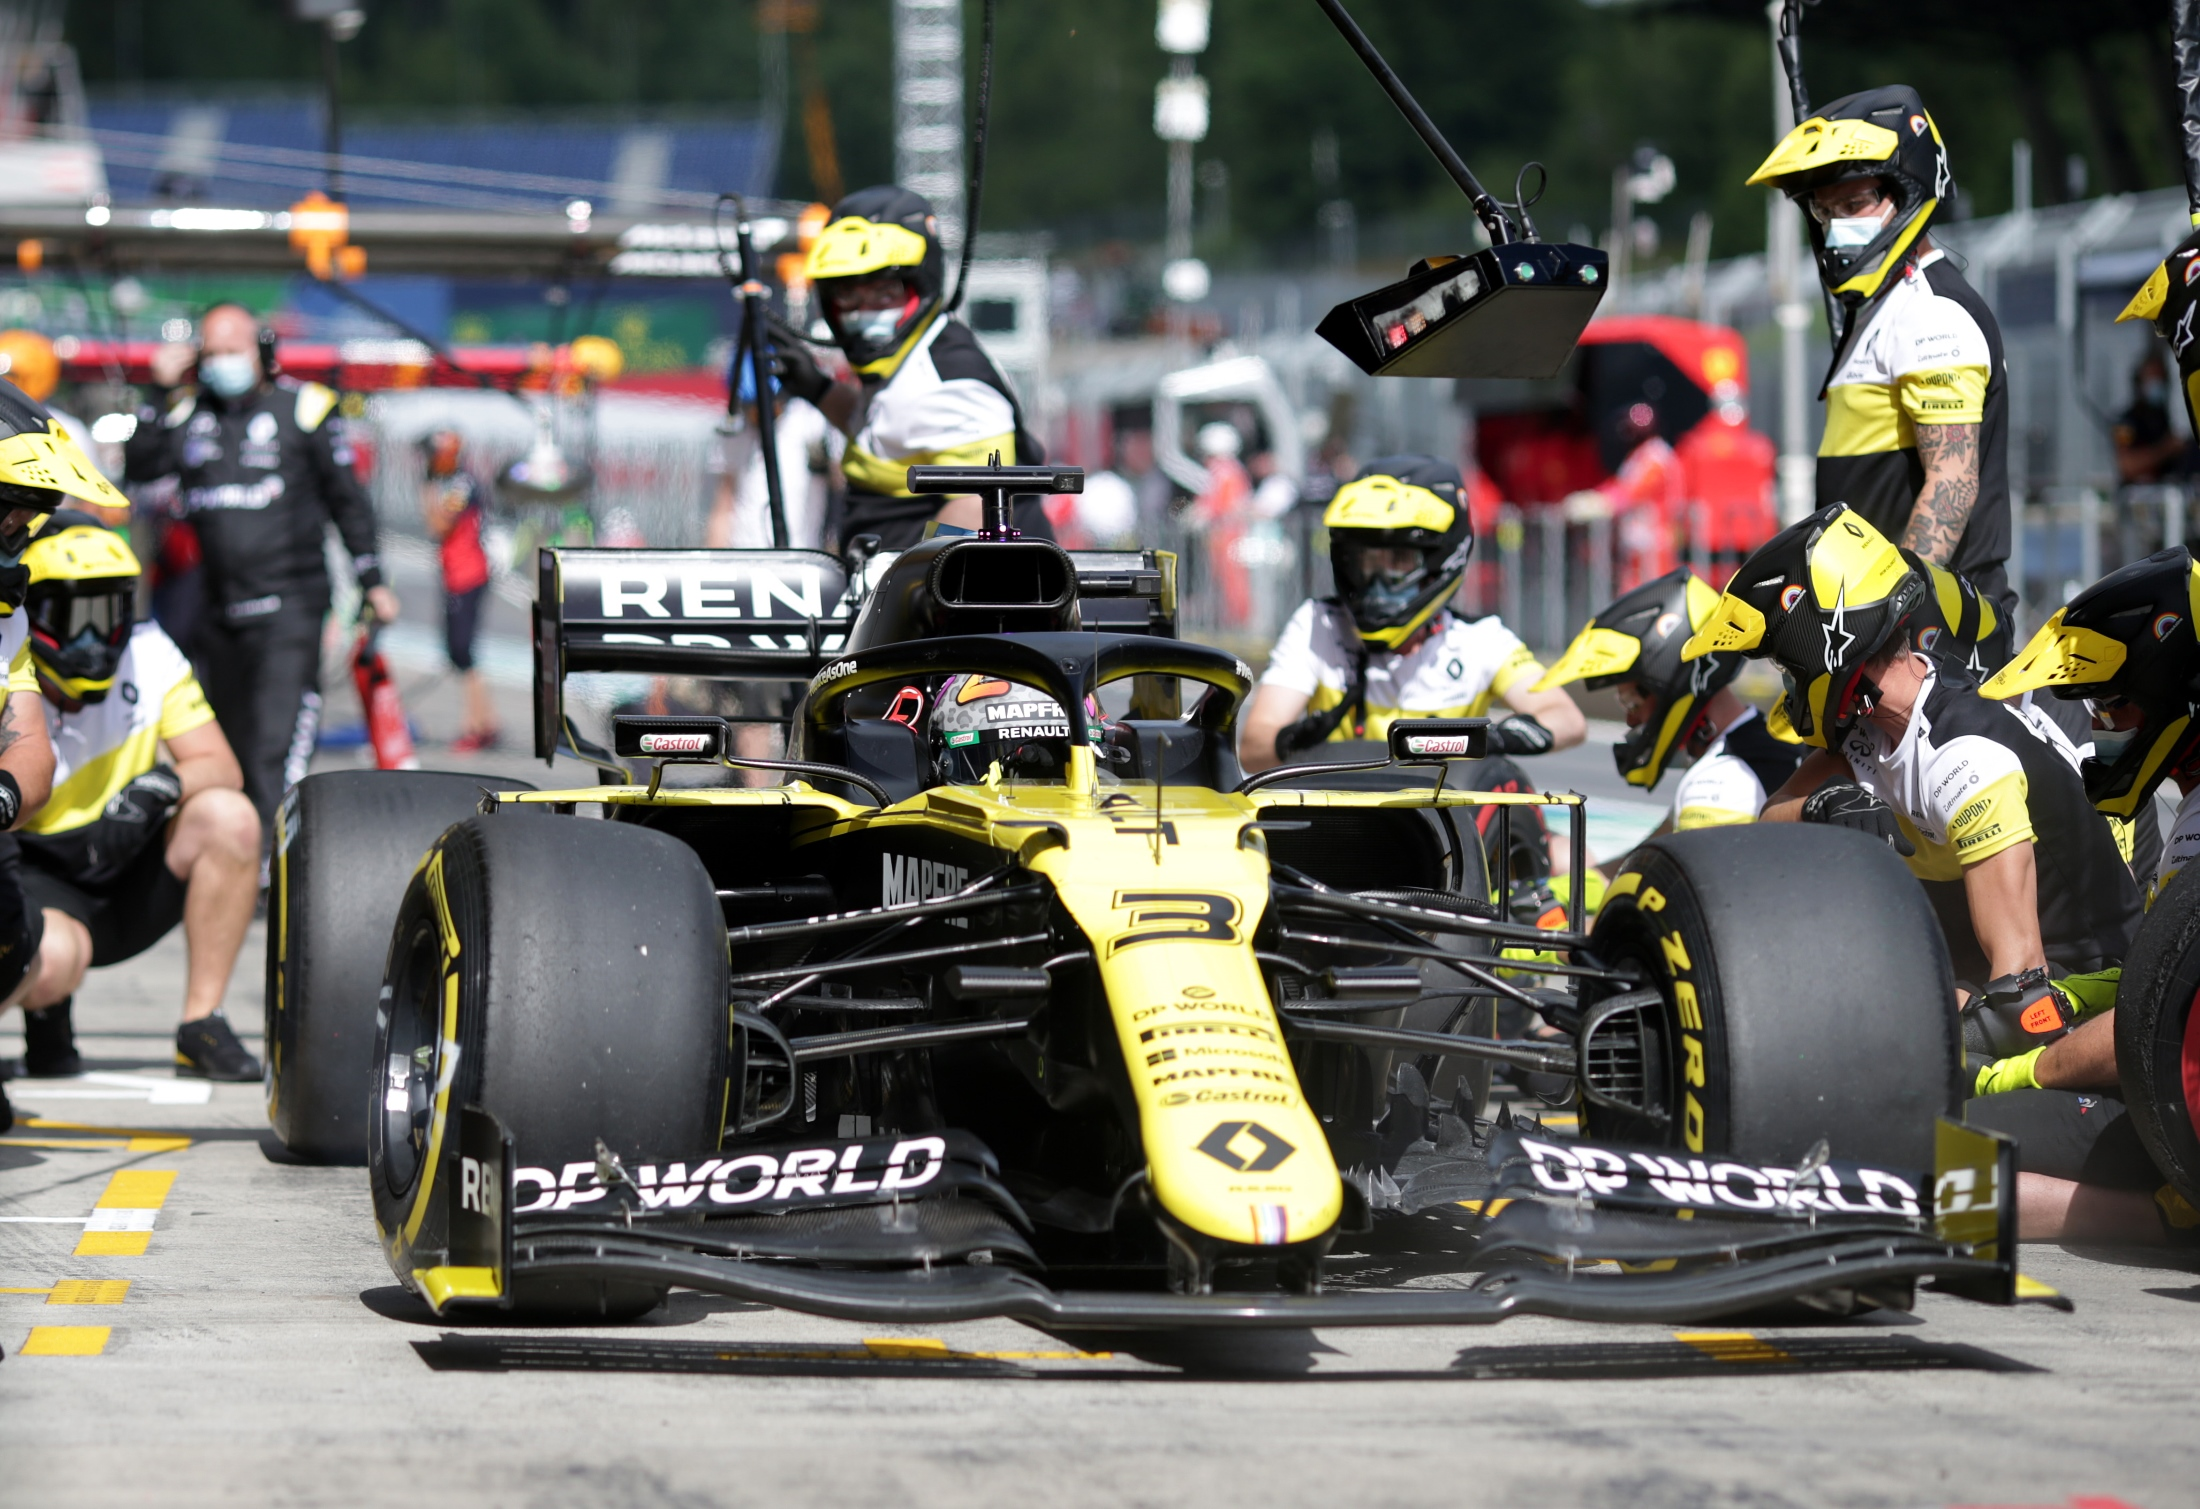 We Were Fast Ricciardo Feeling Good Vibes As Renault Is Quick Out Of The Box Formula 1